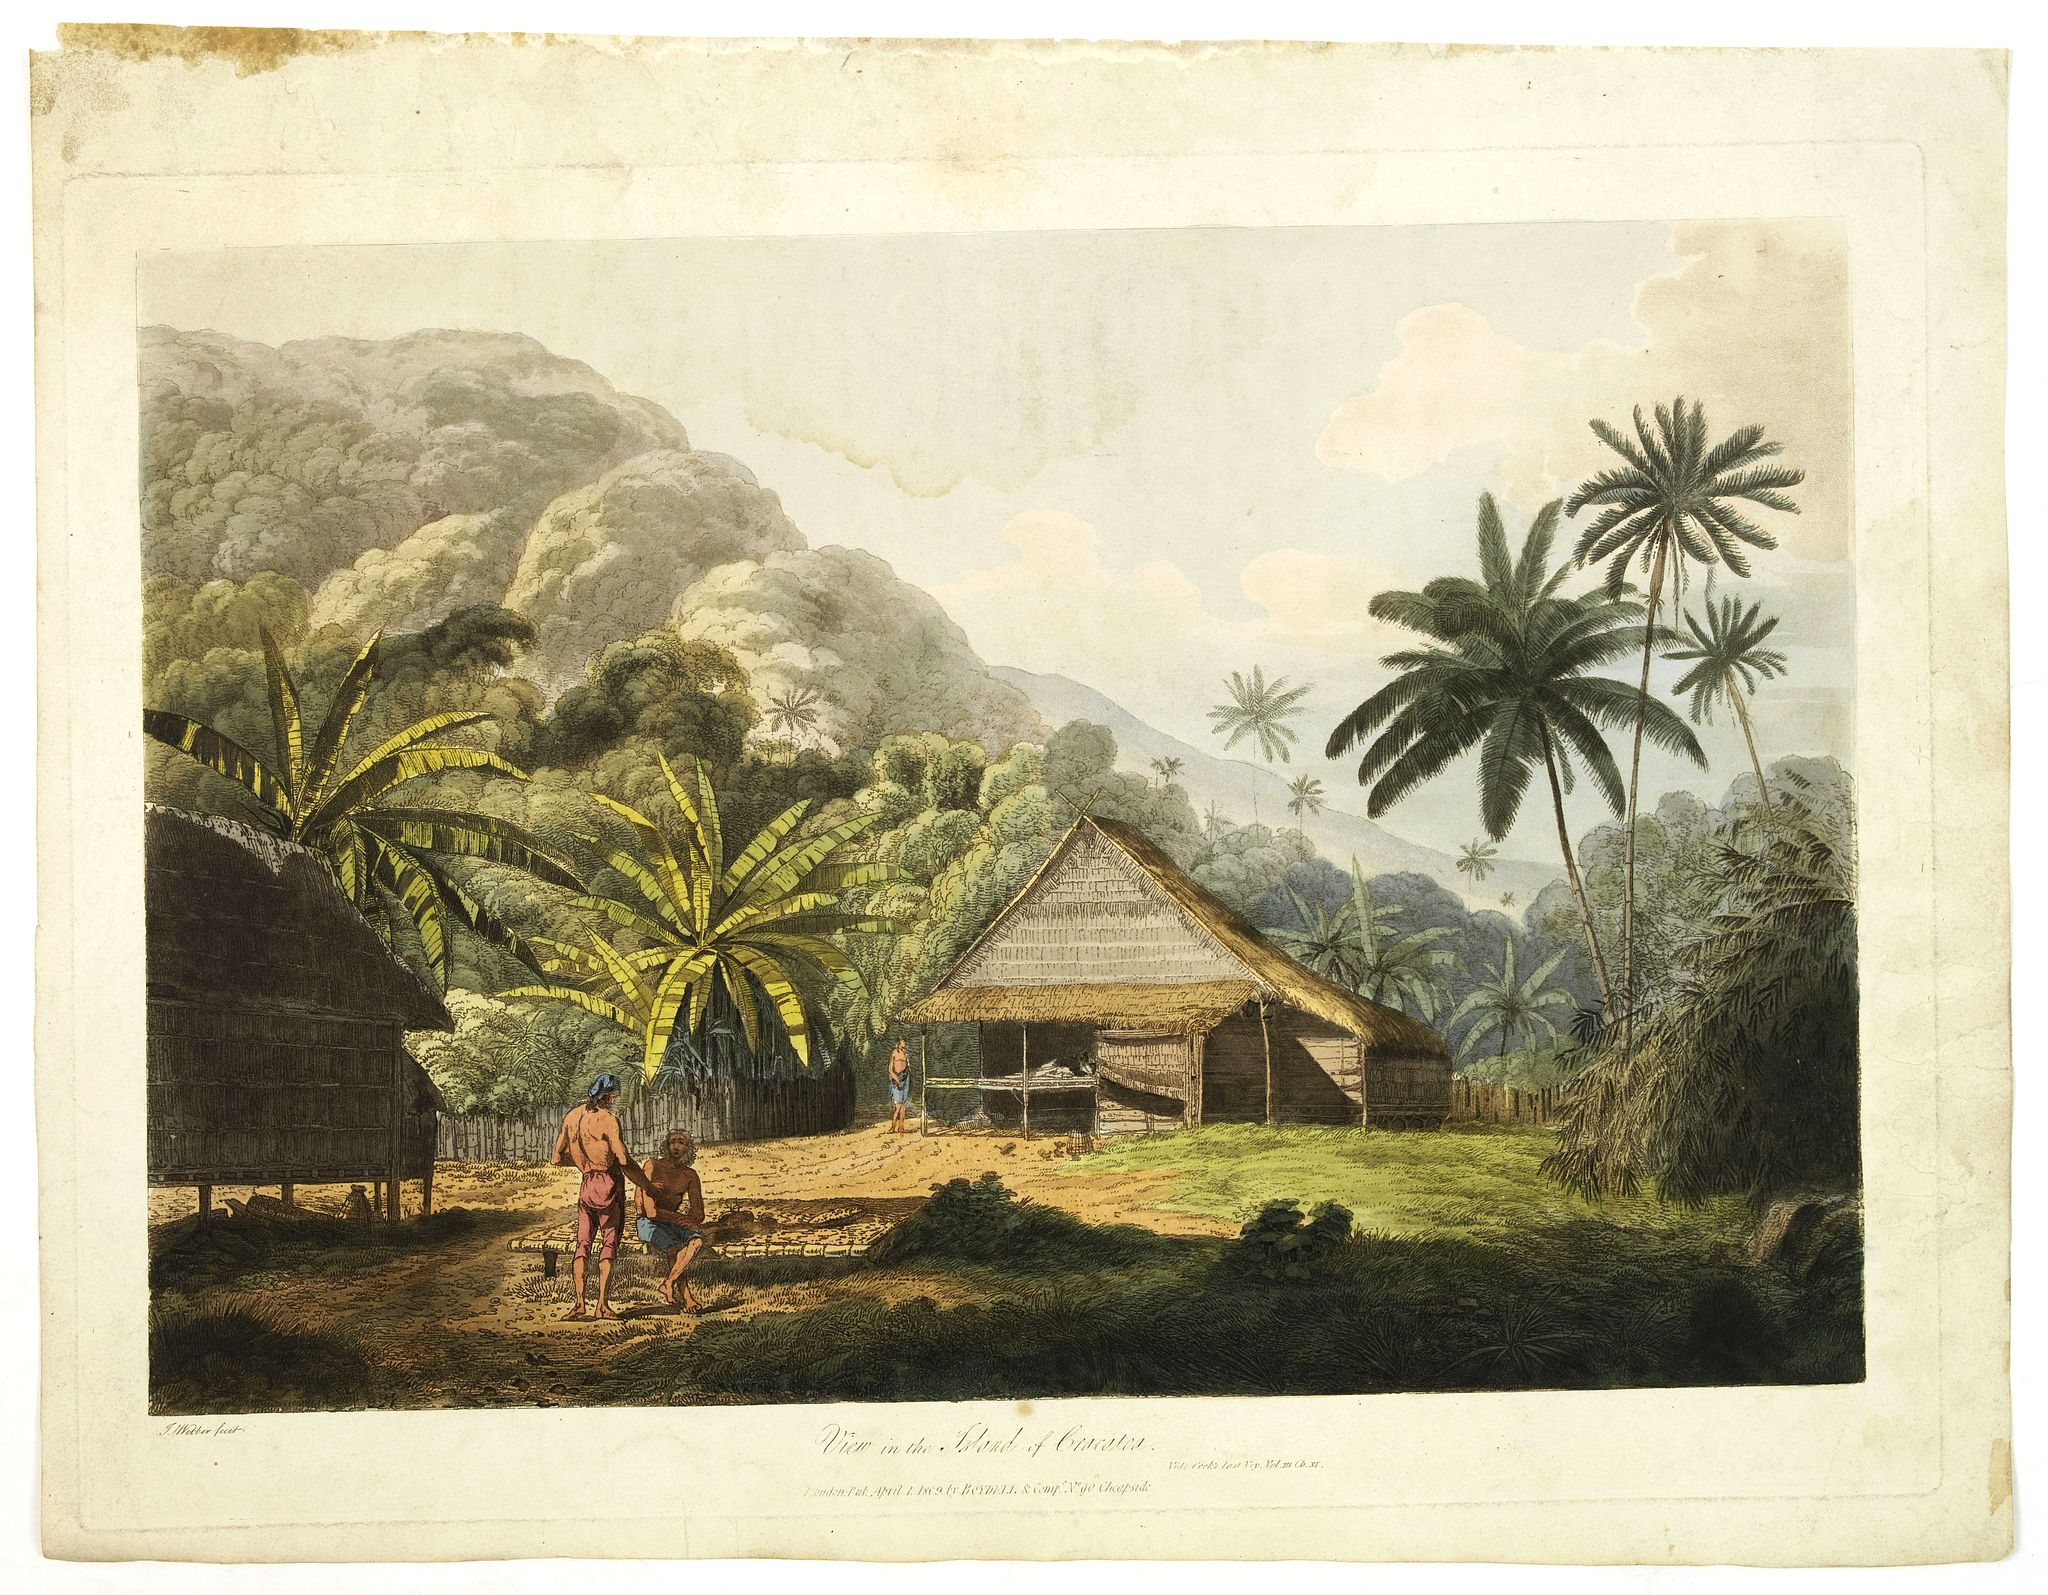 WEBBER, J. -  View in the island of Cracatoa.